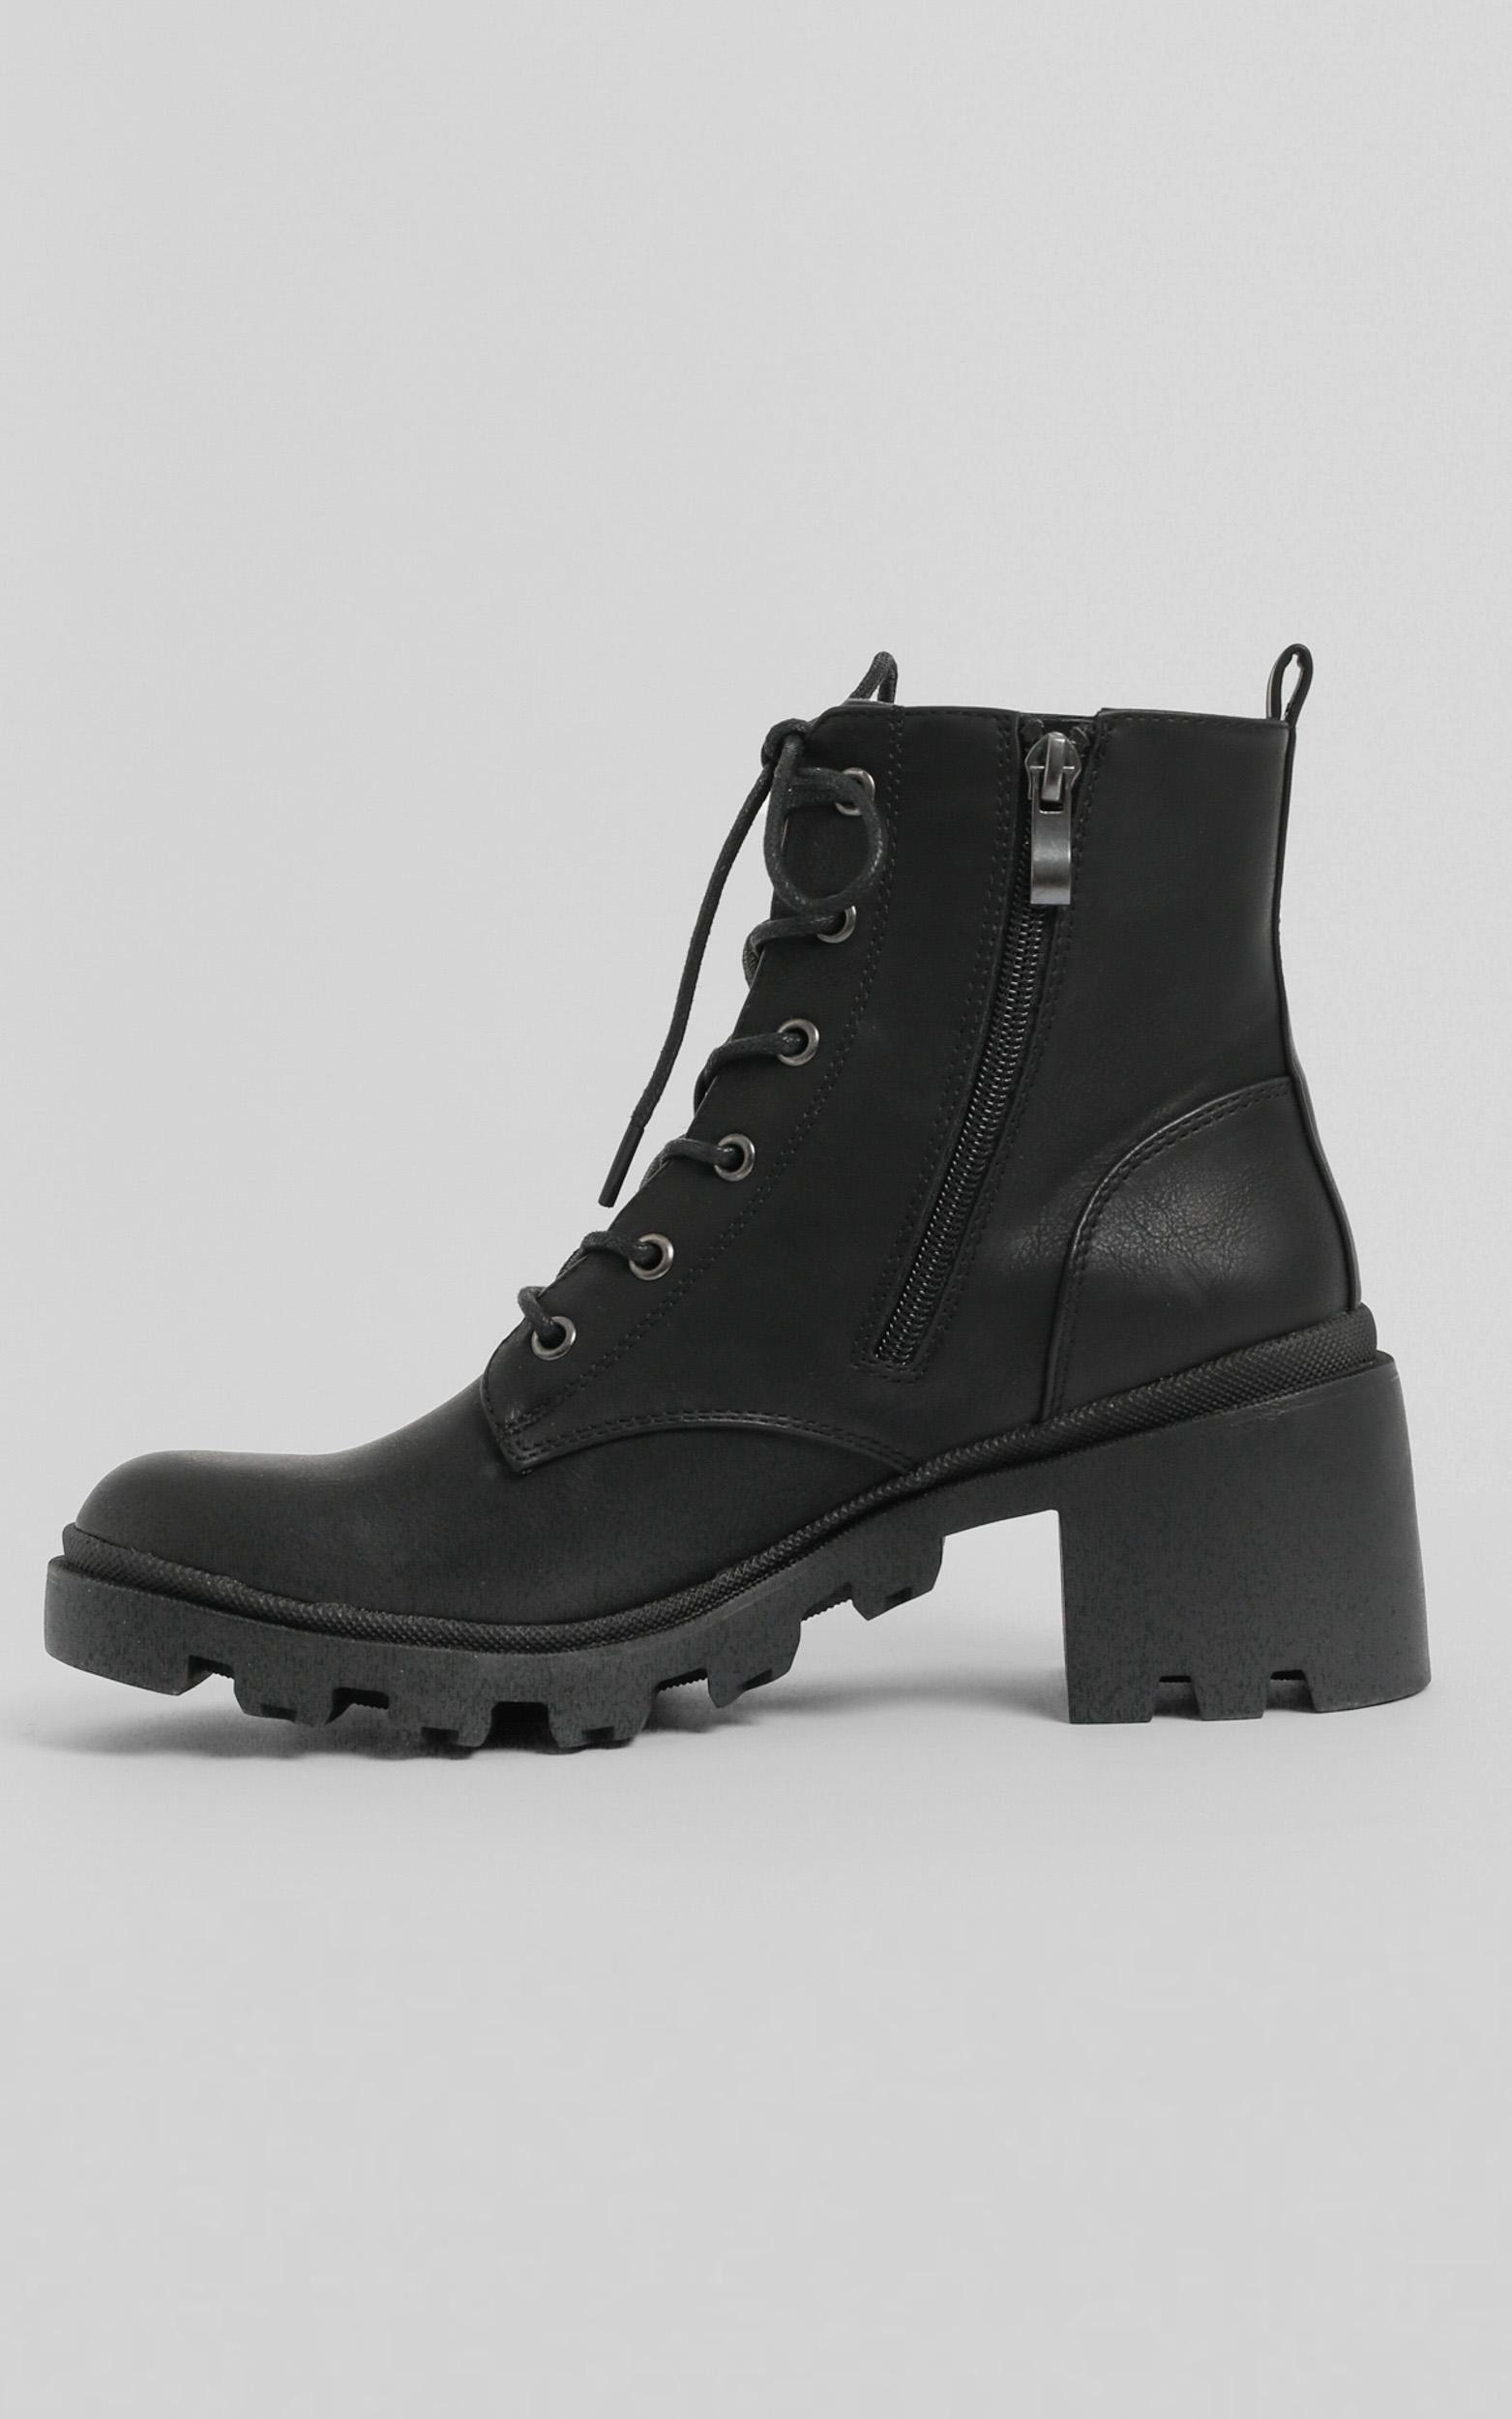 Verali - Tonka Boots in black softee - 5, Black, hi-res image number null